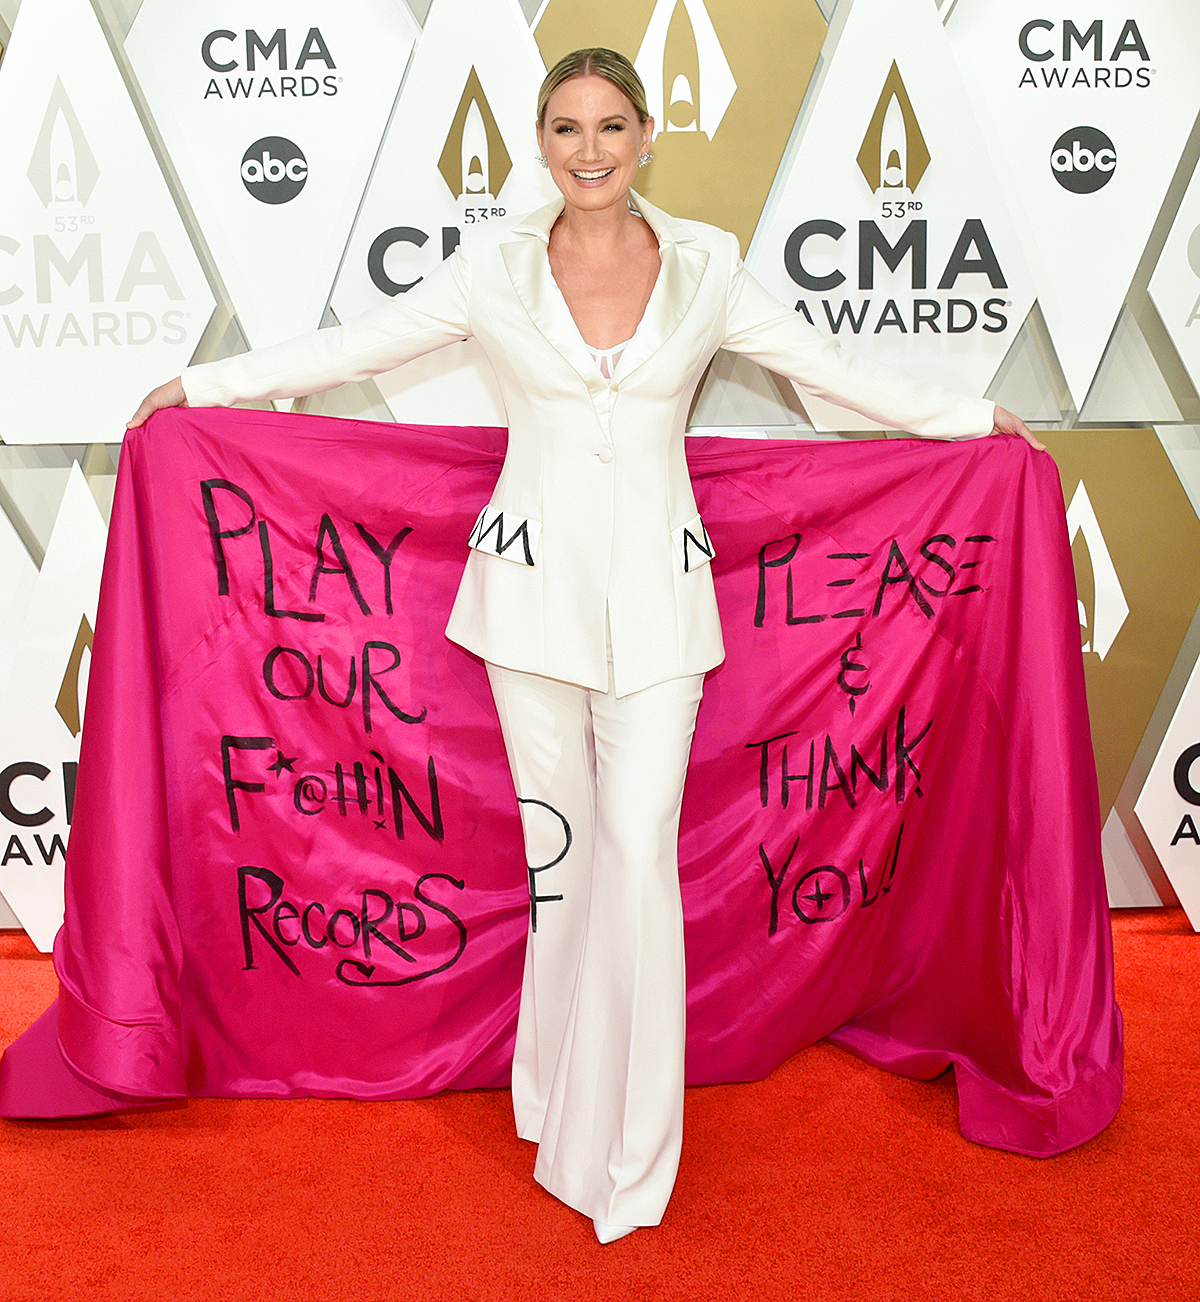 Jennifer Nettles attends the 53rd annual CMA Awards at the Music City Center on Novem